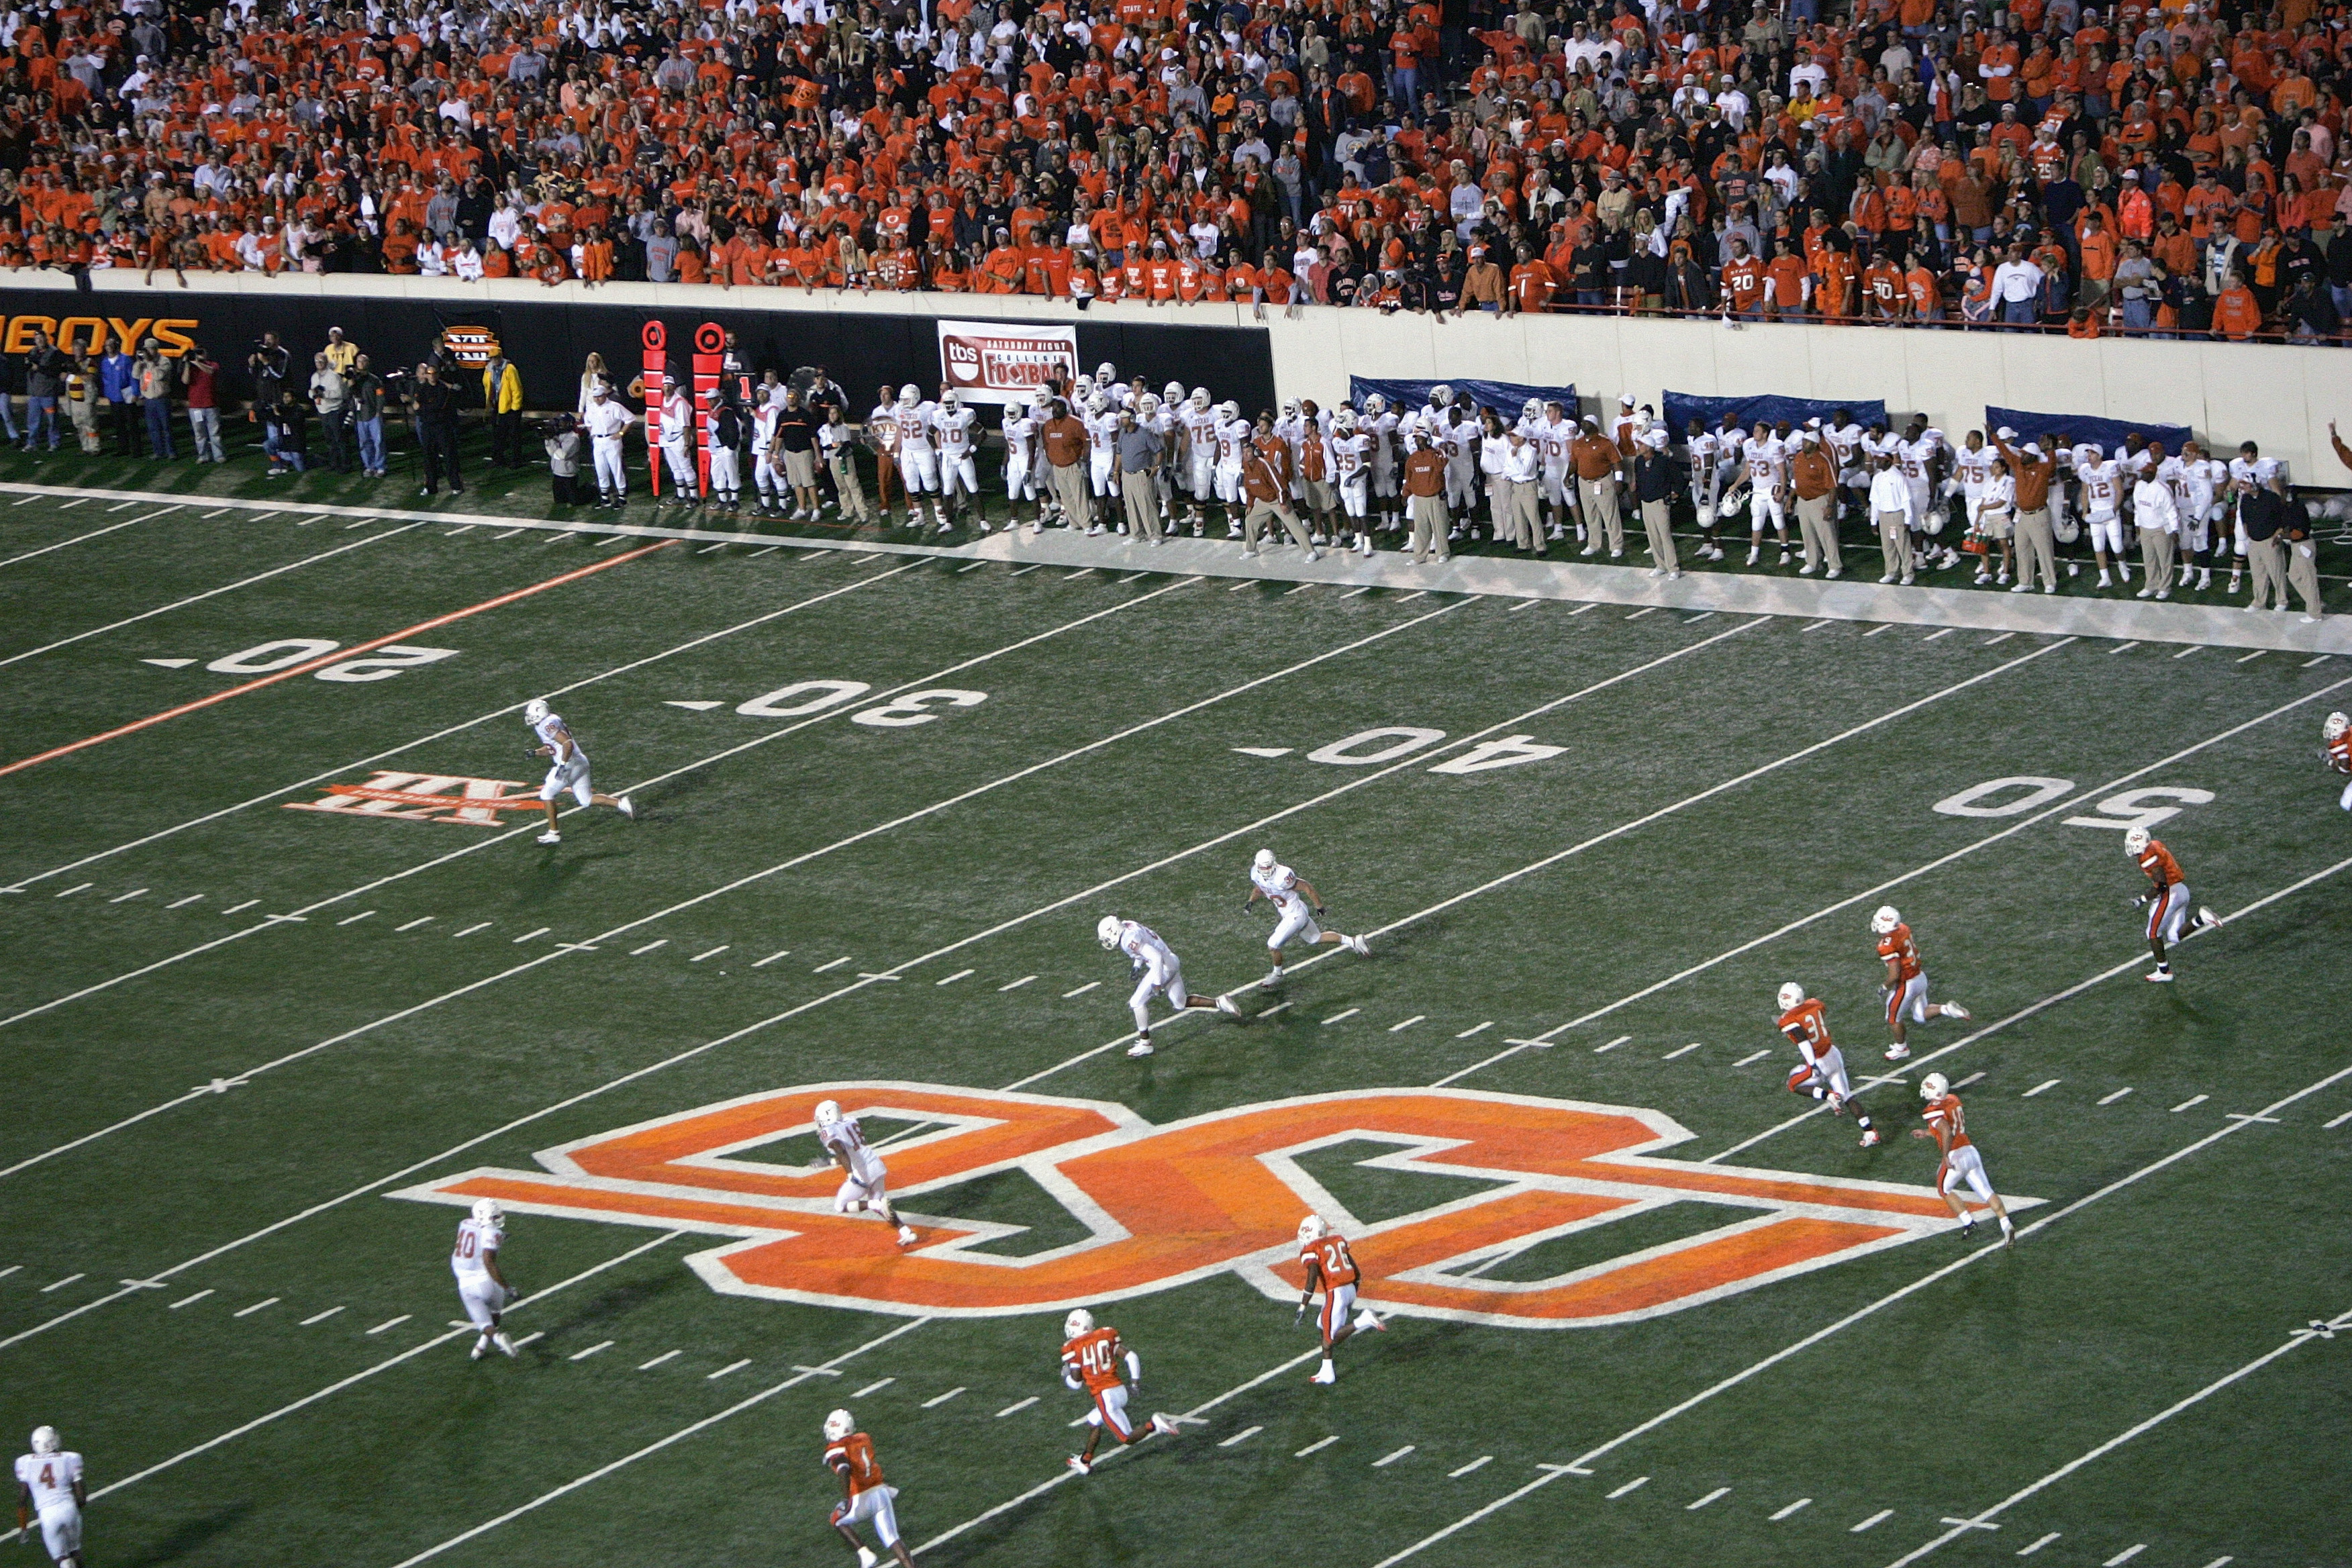 STILLWATER, OK - OCTOBER 29:  The OSU logo is shown during the Texas Longhorns game against the Oklahoma State Cowboys on October 29, 2005 at Boone Pickens Stadium in Stillwater, Oklahoma. The Longhorns defeated the Cowboys 47-28.  (Photo by Ronald Martin